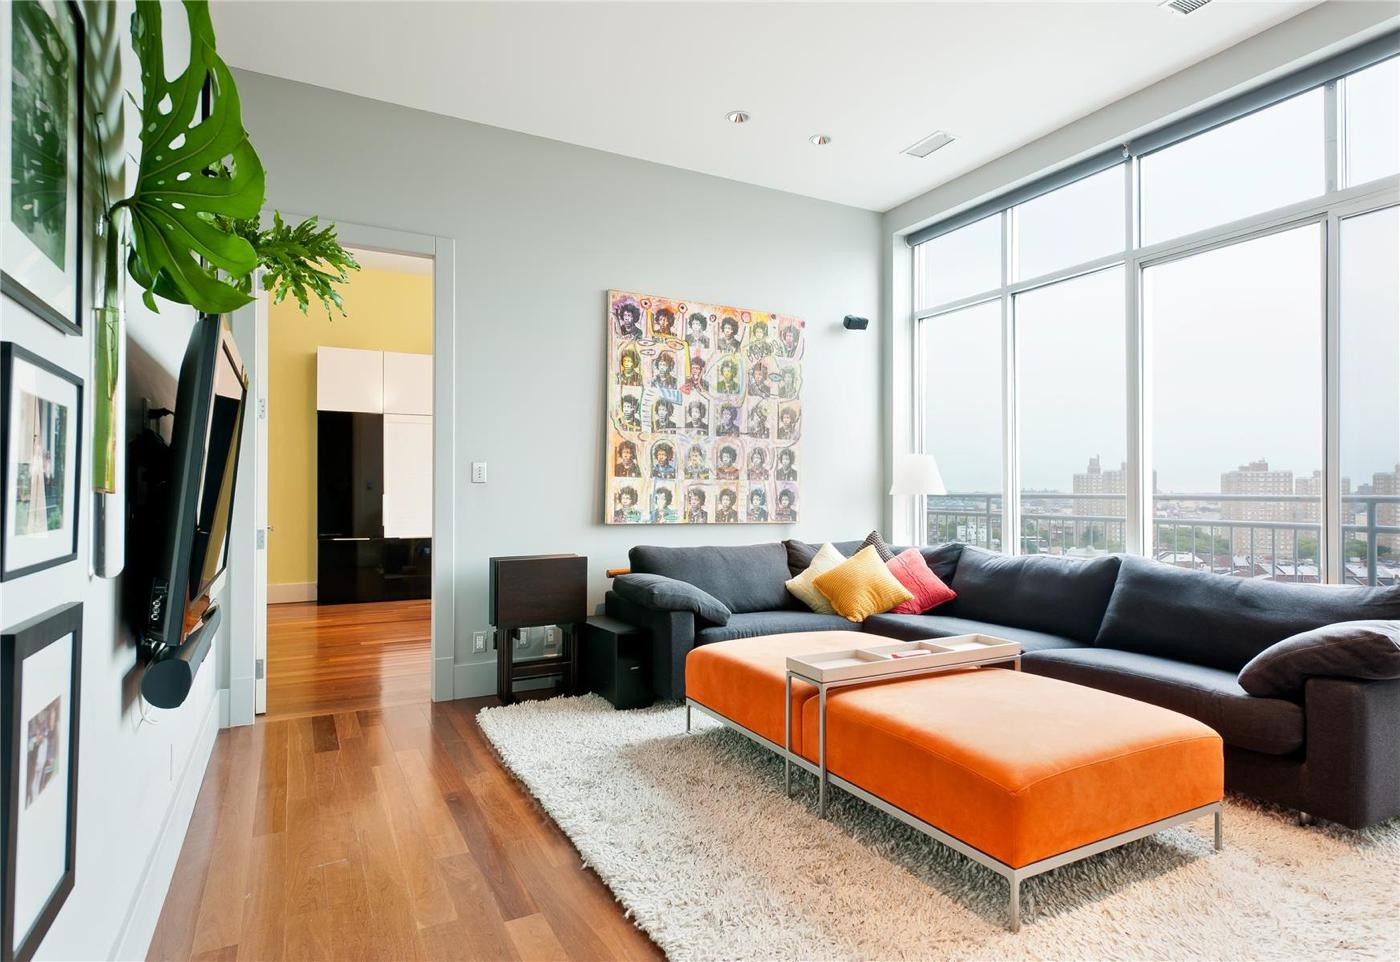 12 Amazing New York Loft Apartments That Will Give You A Serious Case Of Home Envy! (12)